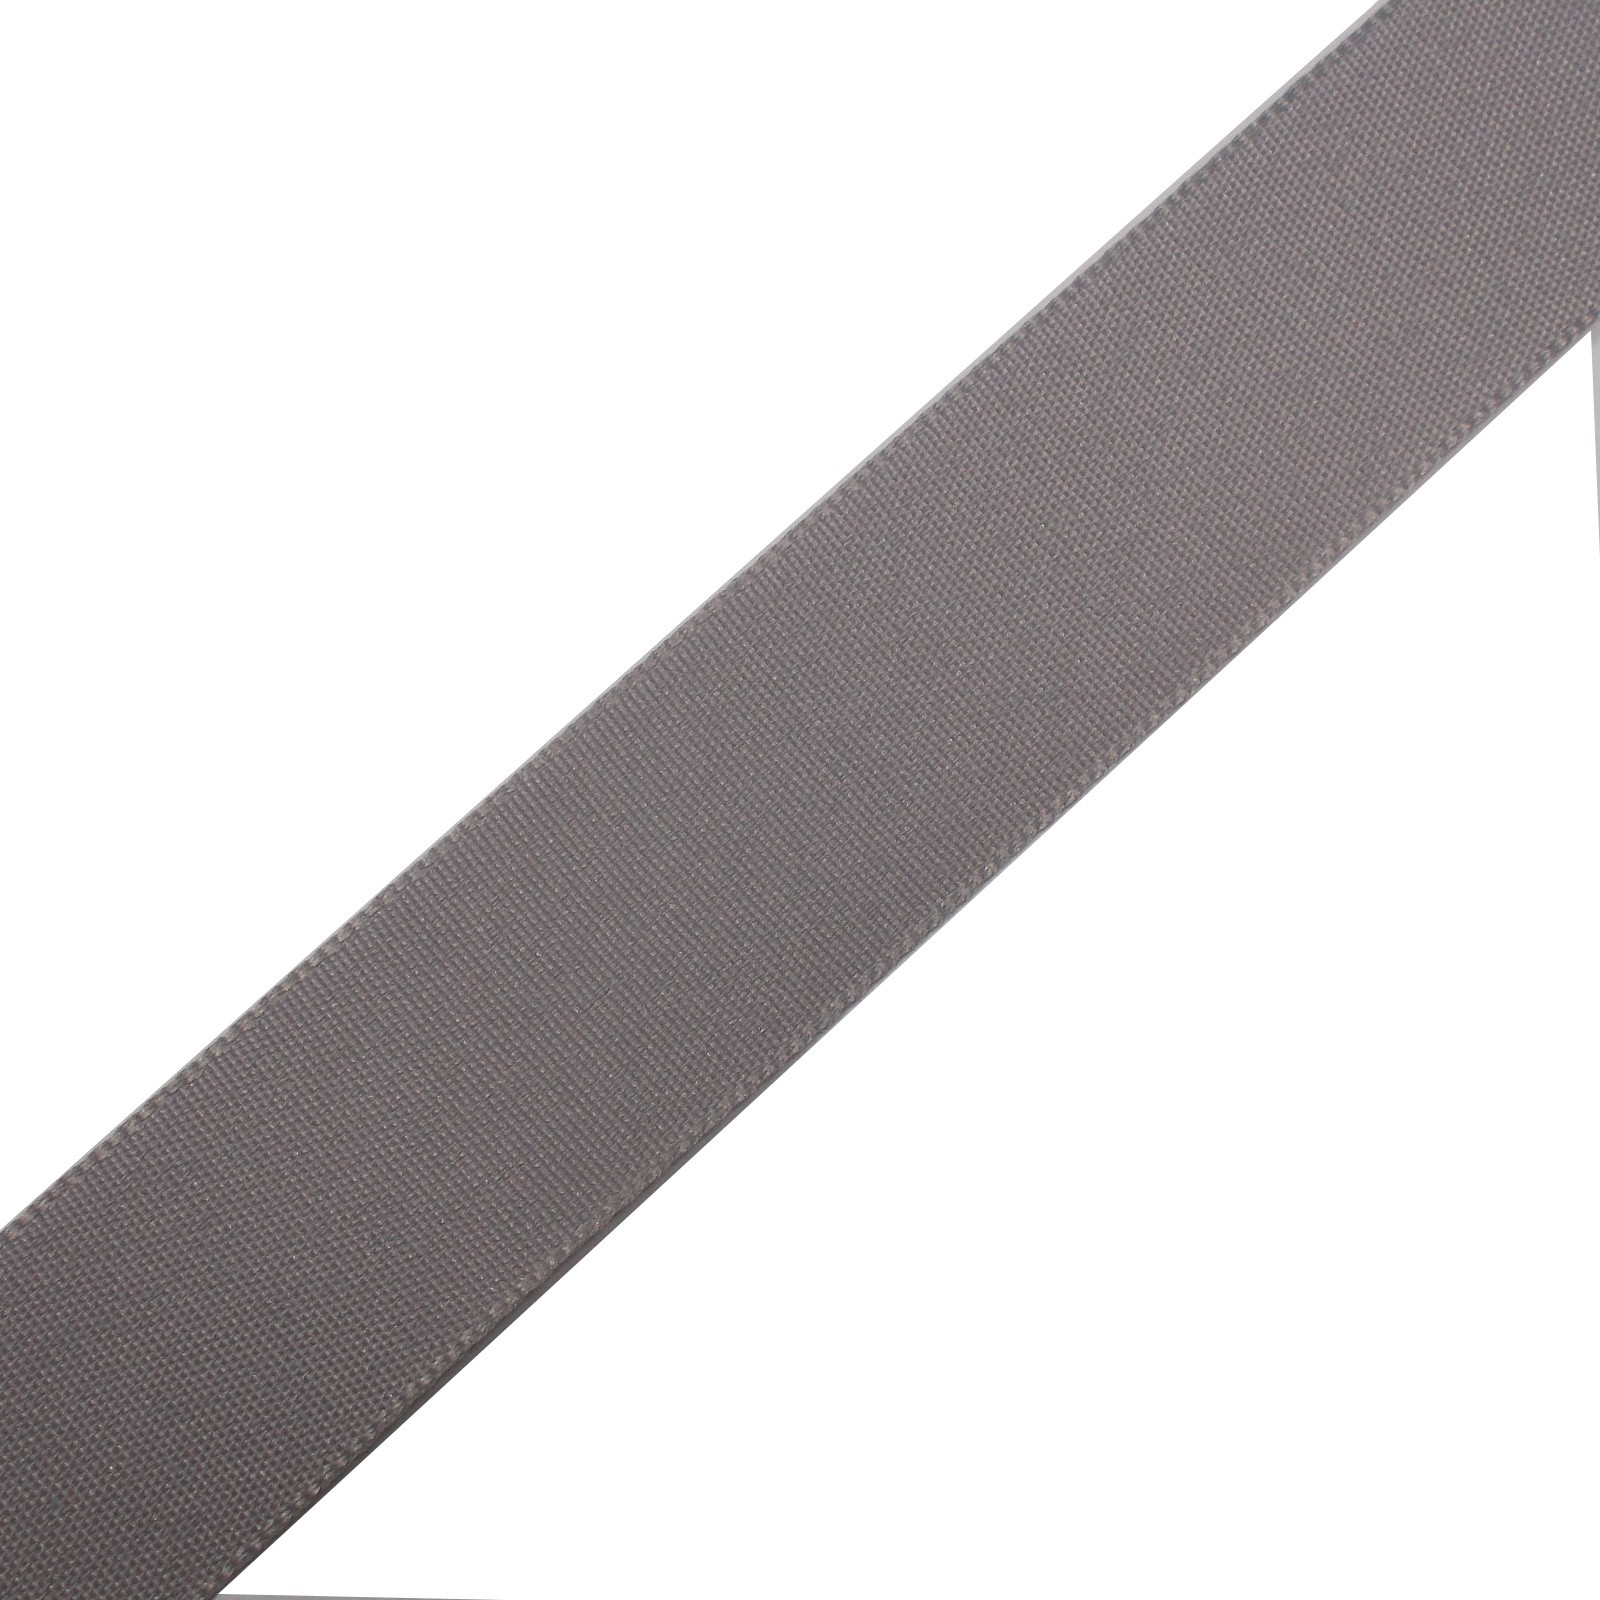 Berisfords Seam Binding Polyester Ribbon Tape 25mm wide Light Grey 1 metre length